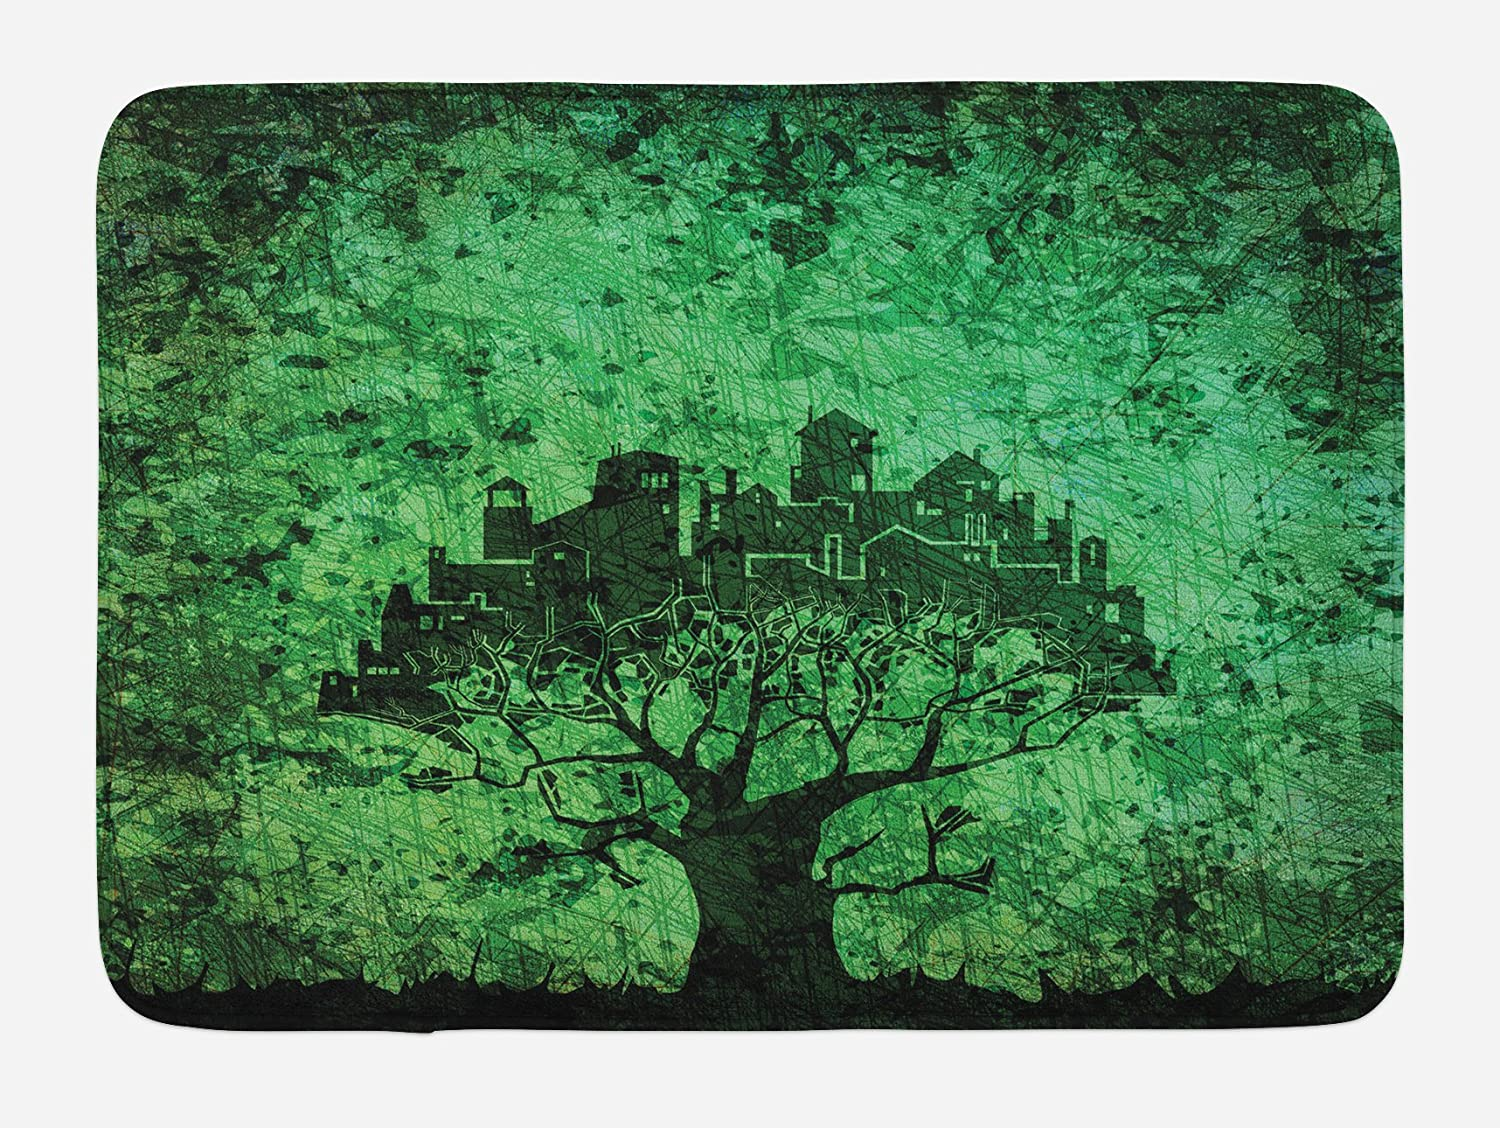 Ambesonne Abstract Bath Mat, City Composition Buildings Houses Town on Tree Branches Creative Monochromic Artwork, Plush Bathroom Decor Mat with Non Slip Backing, 29.5